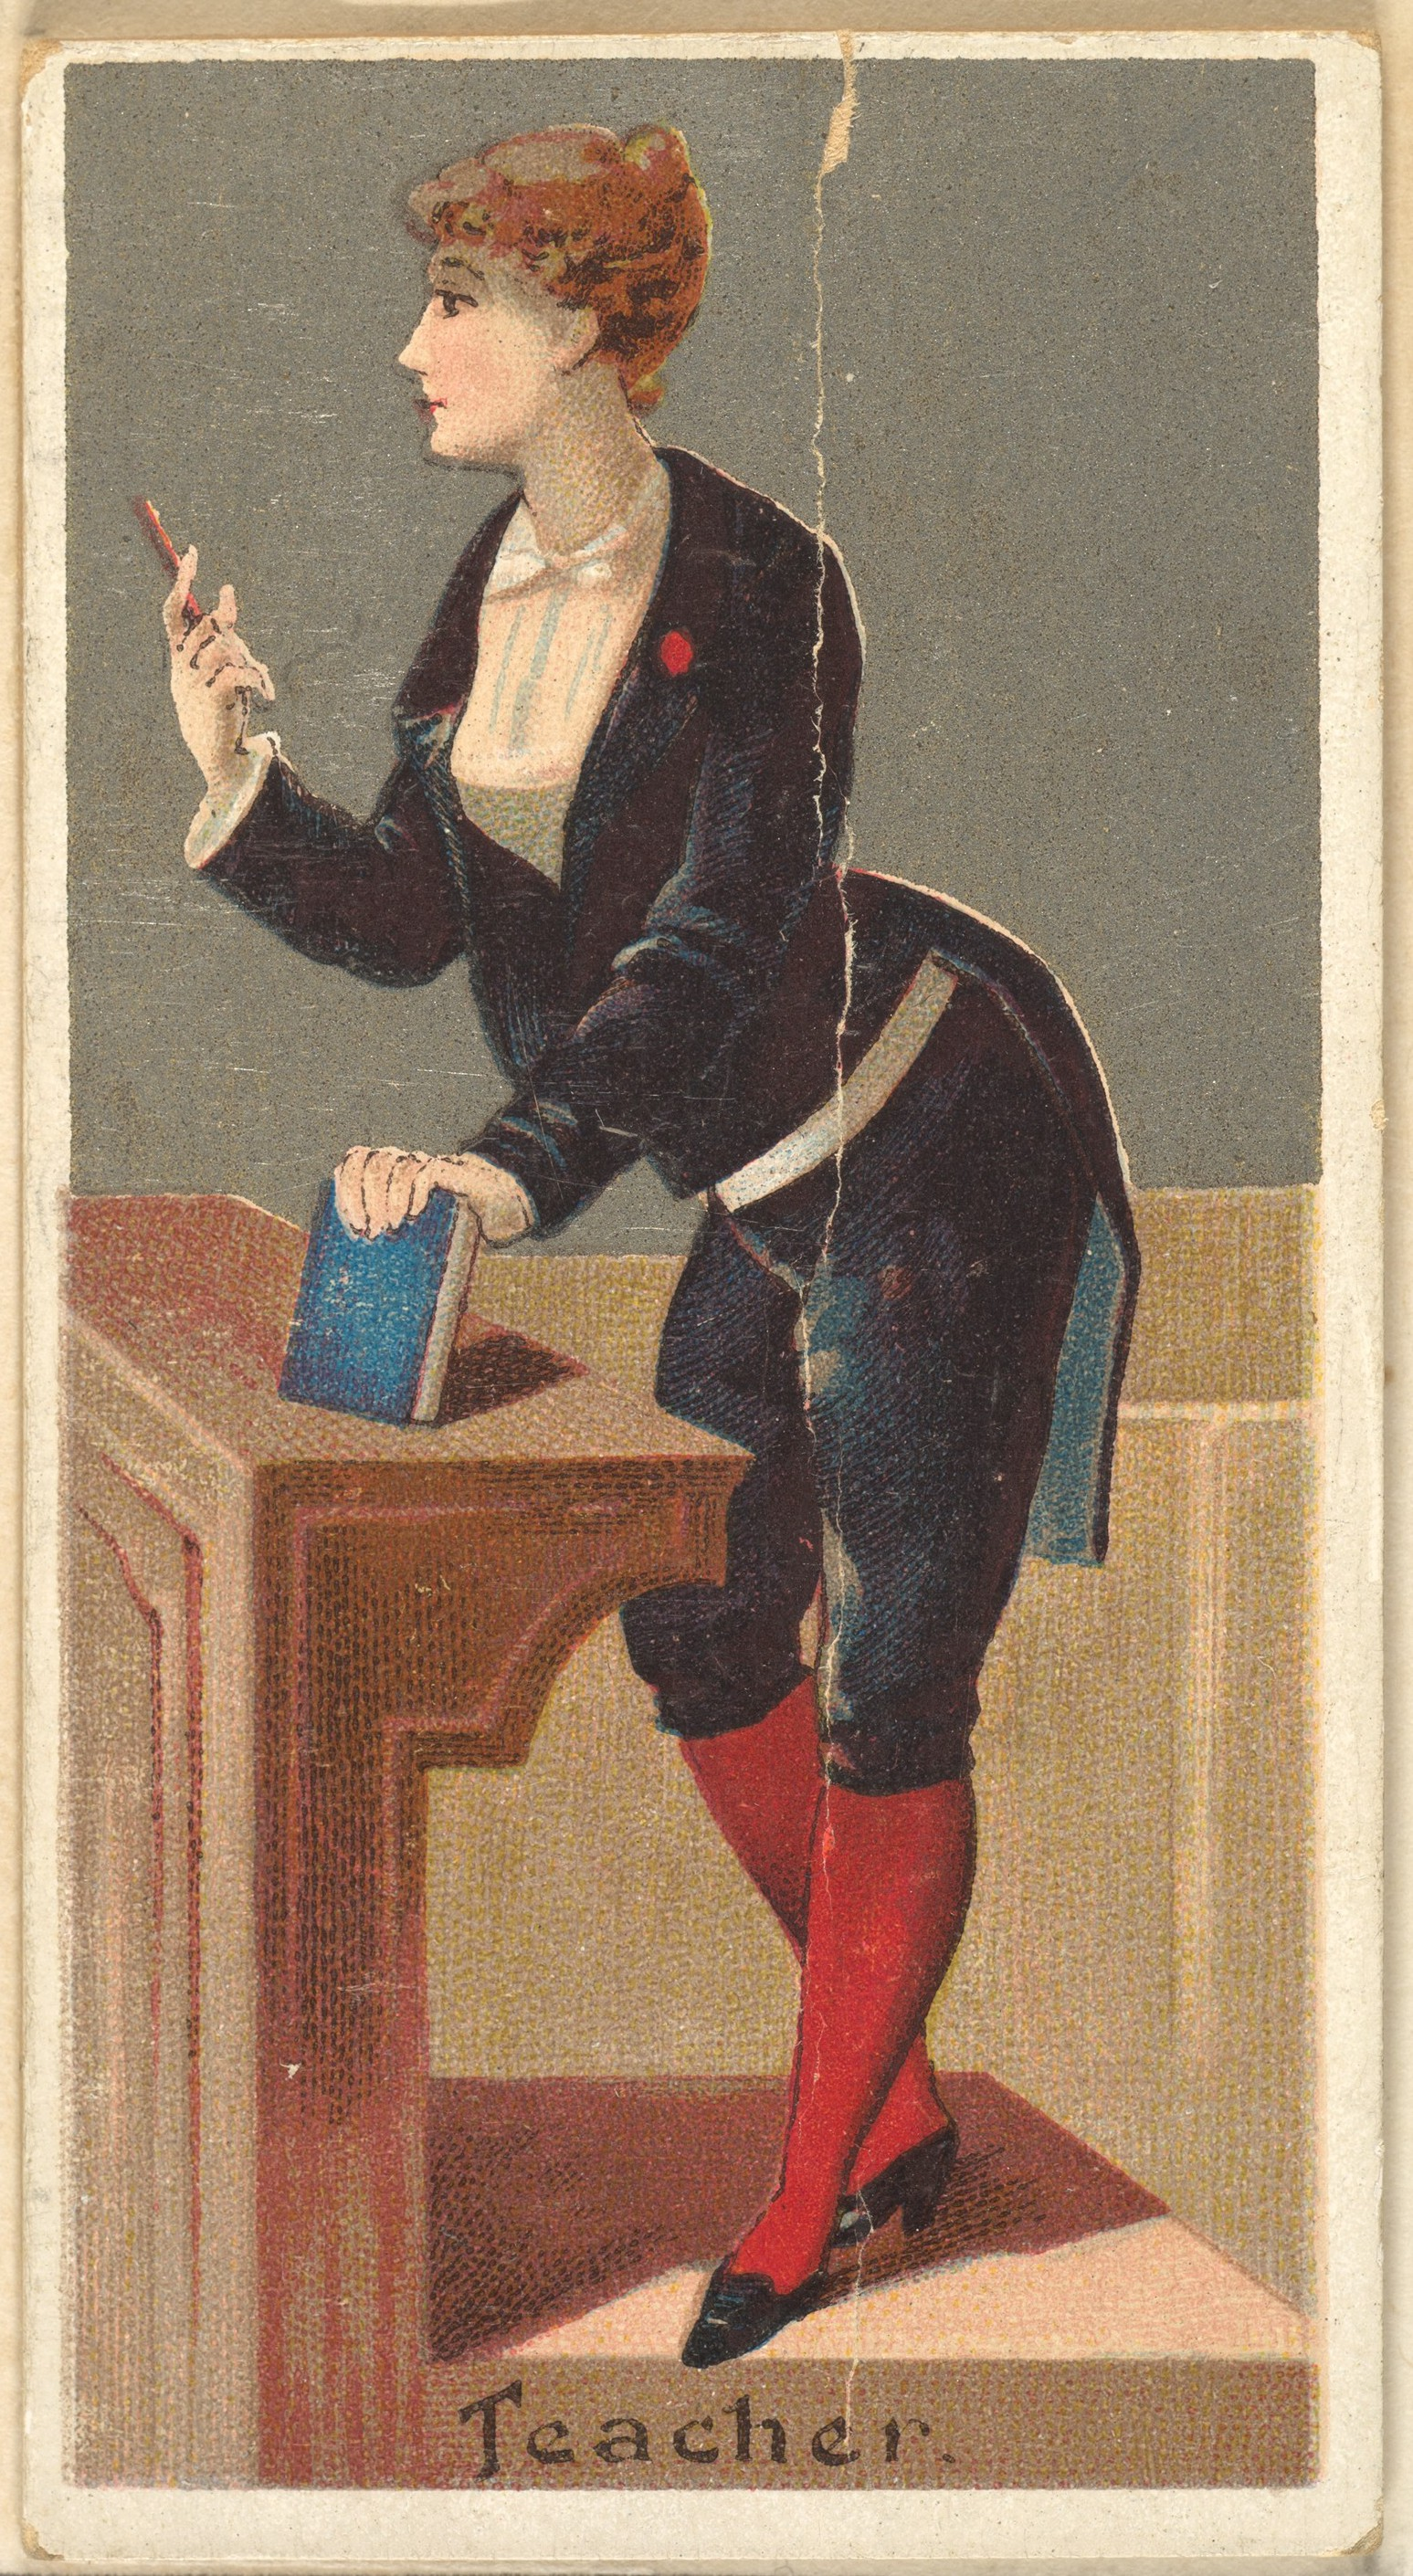 Teacher, from the Occupations for Women series (N166) for Old Judge and Dogs Head Cigarettes